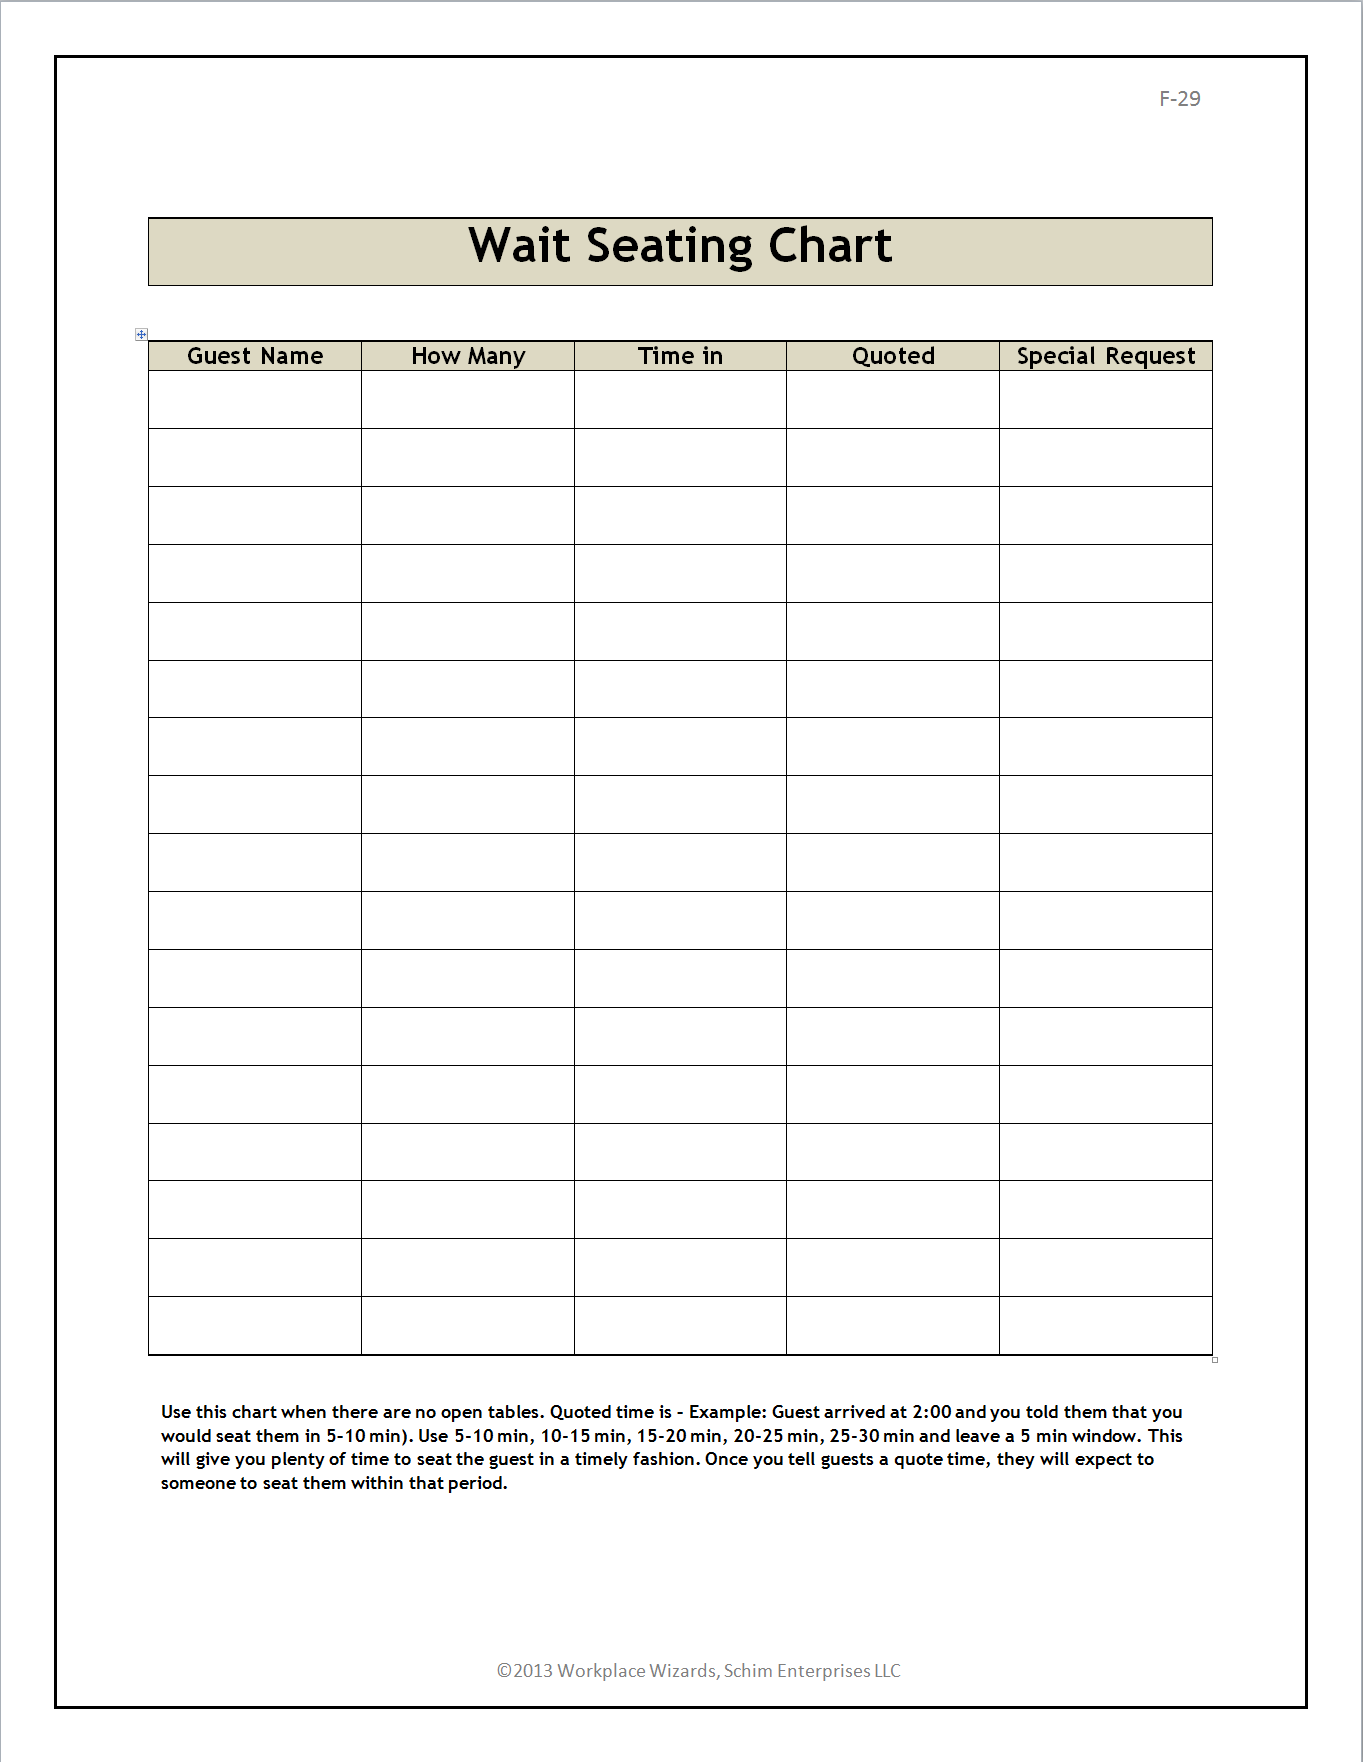 Restaurant wait seating form